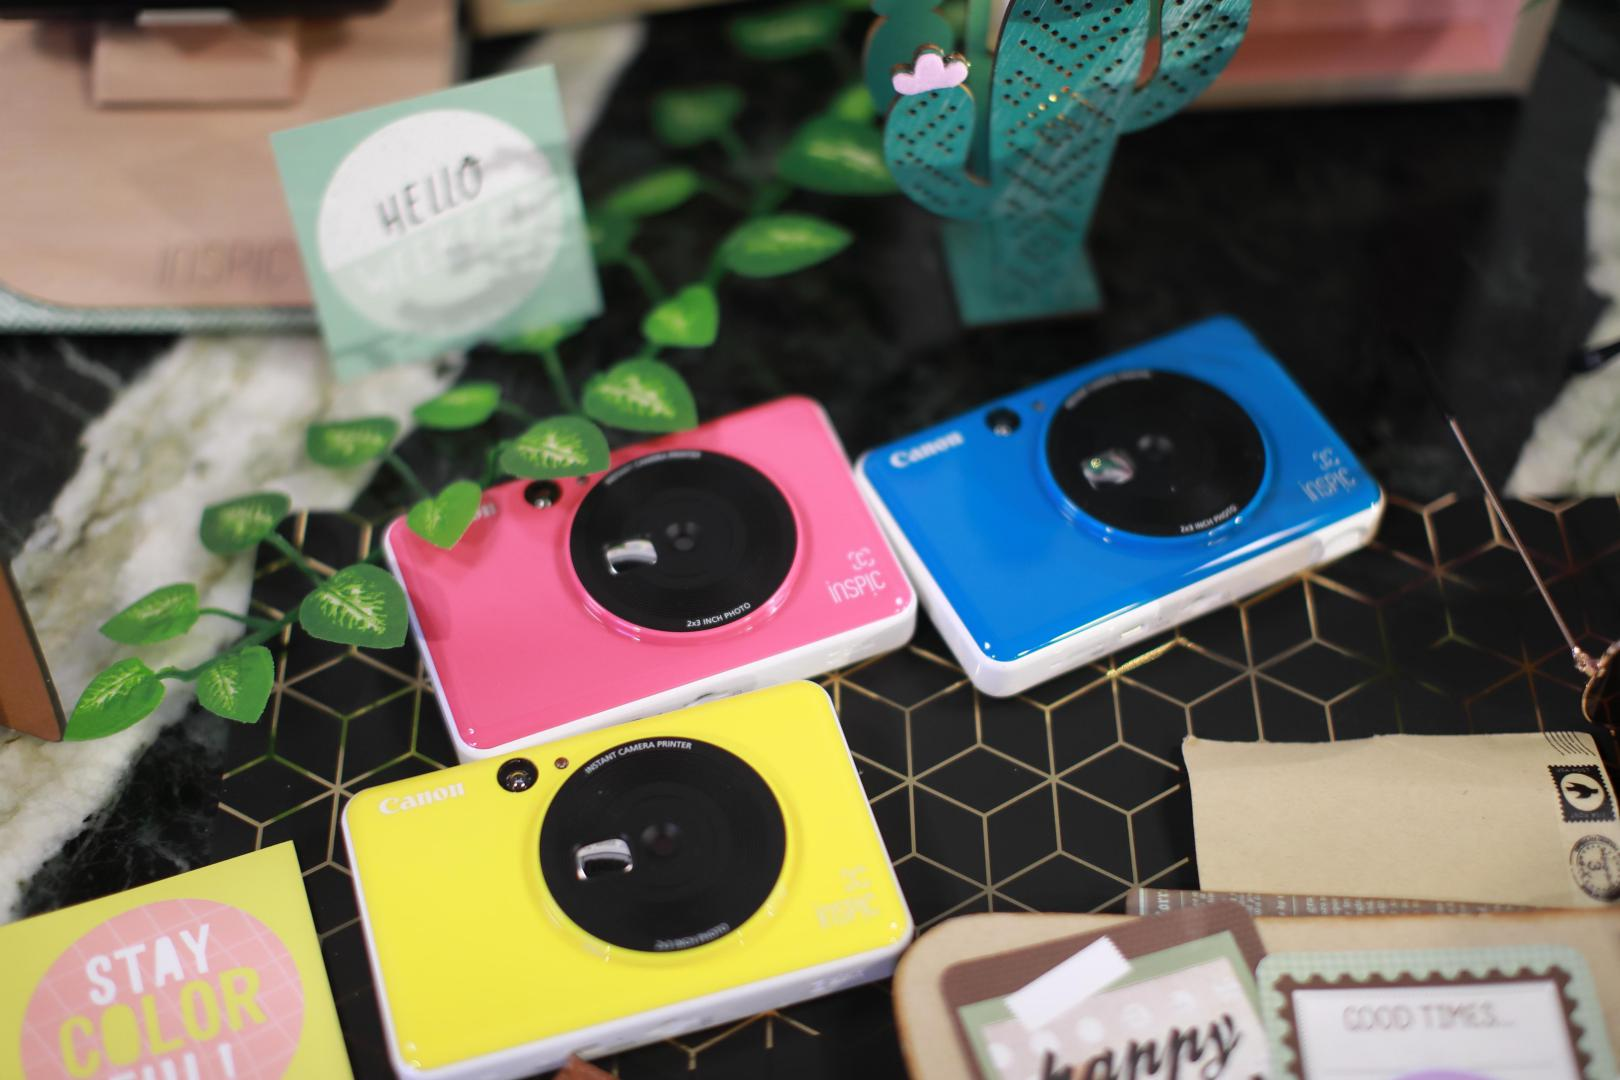 Canon's new stylish instant camera printers arrives at the scene to capture instant fun